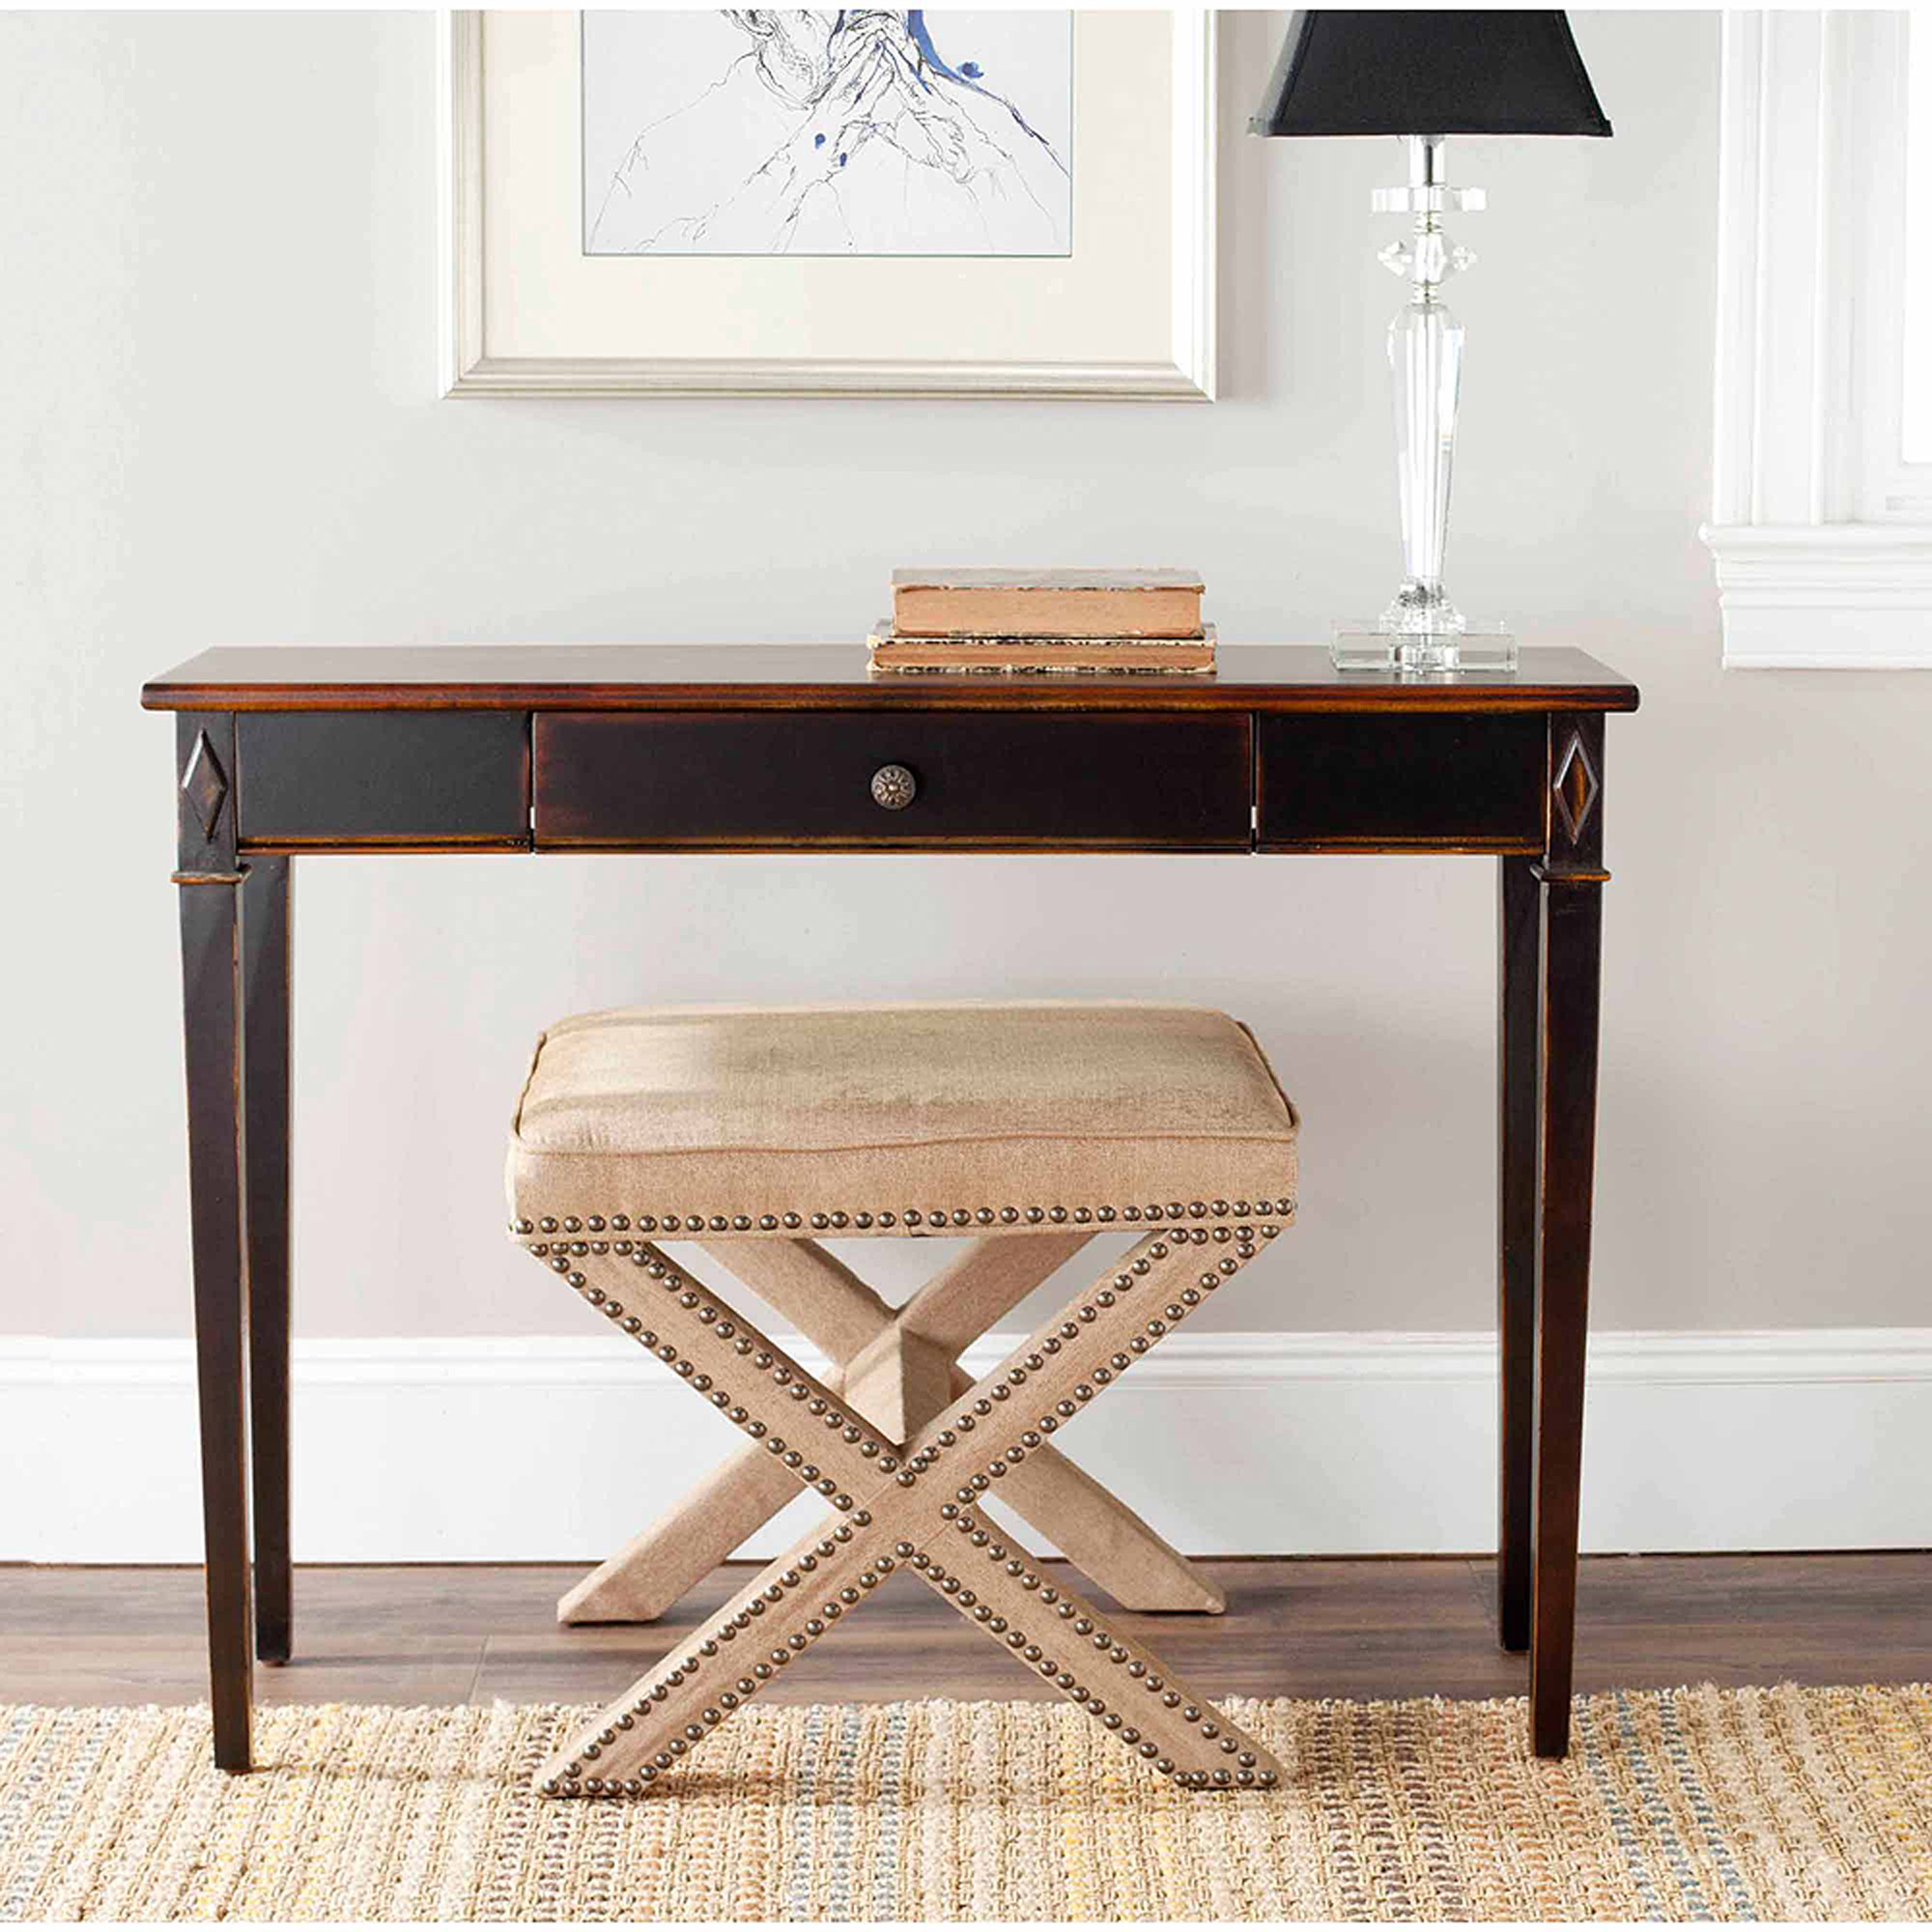 Safavieh Lindy Birch Wood Console Table with Drawer, Lightly Distressed Dark Brown